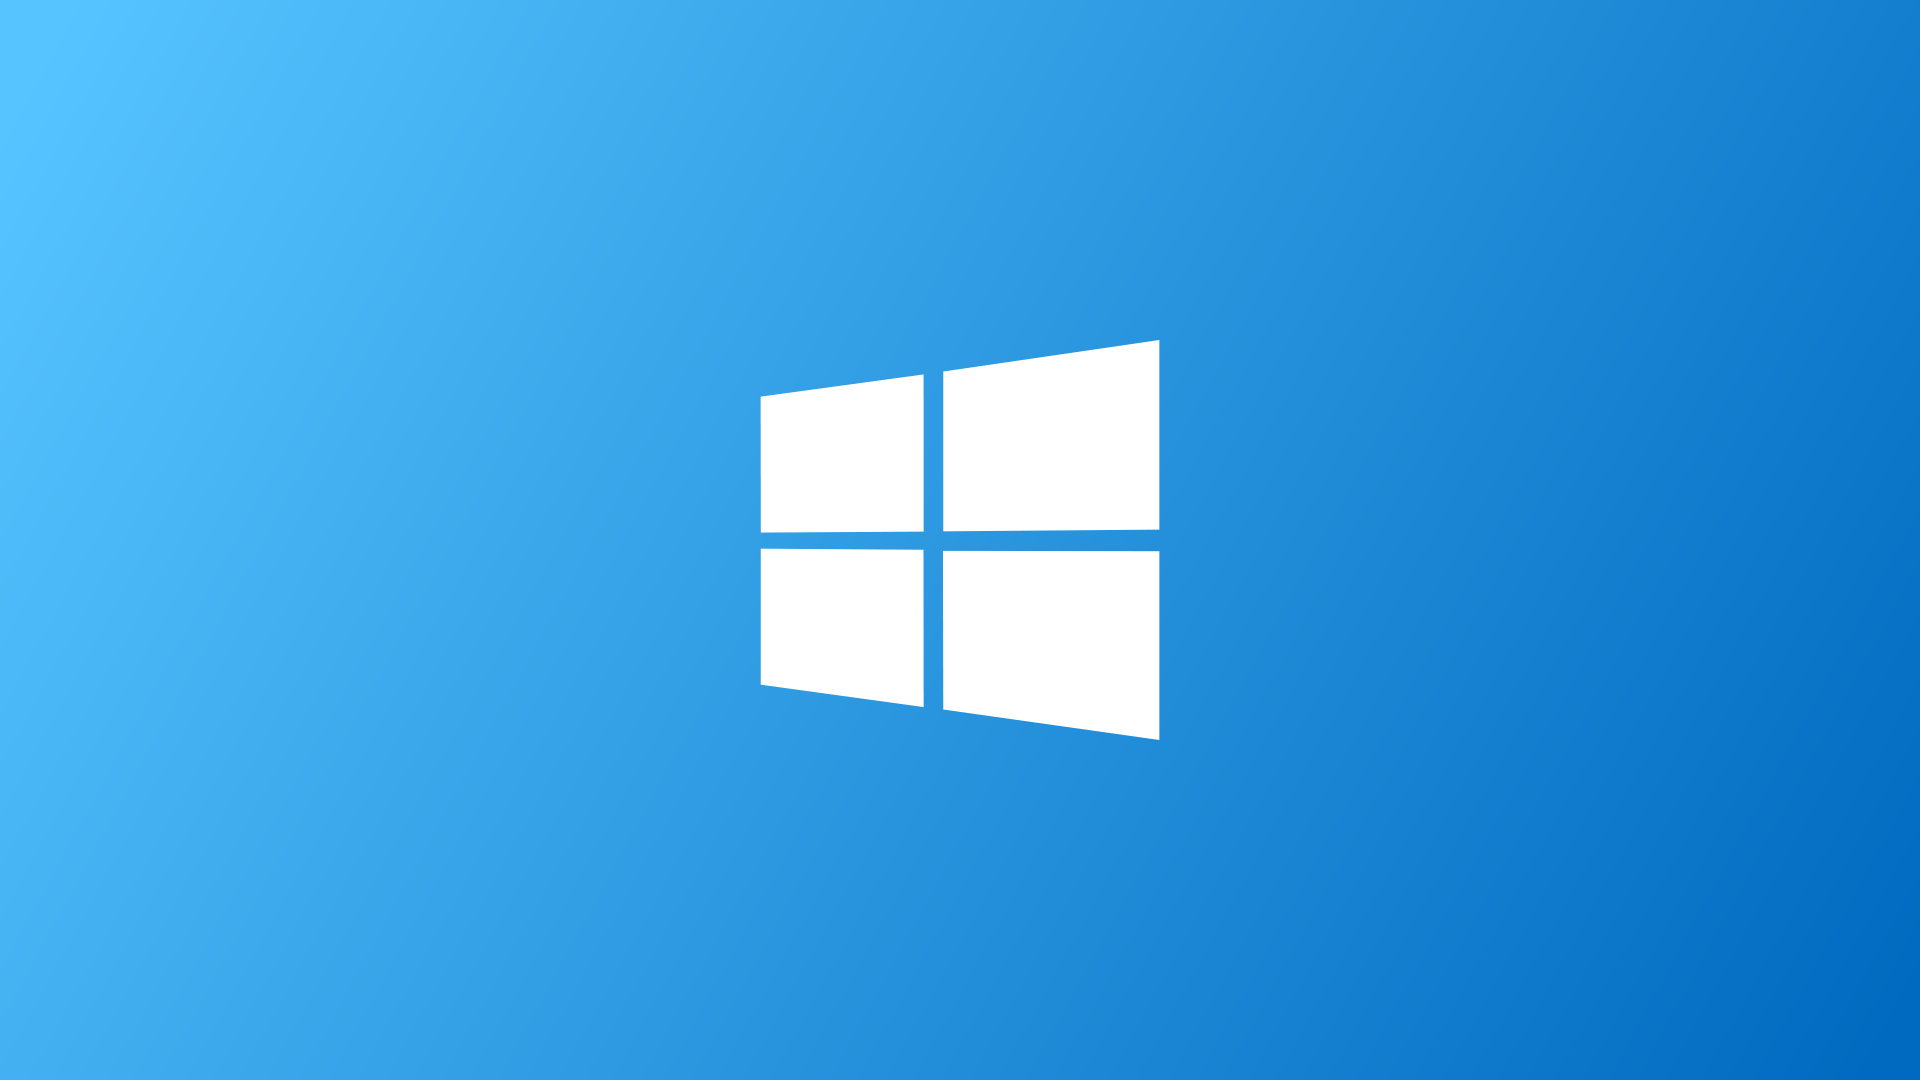 Windows logo wallpapers wallpaper cave for Windows 8 bureaublad